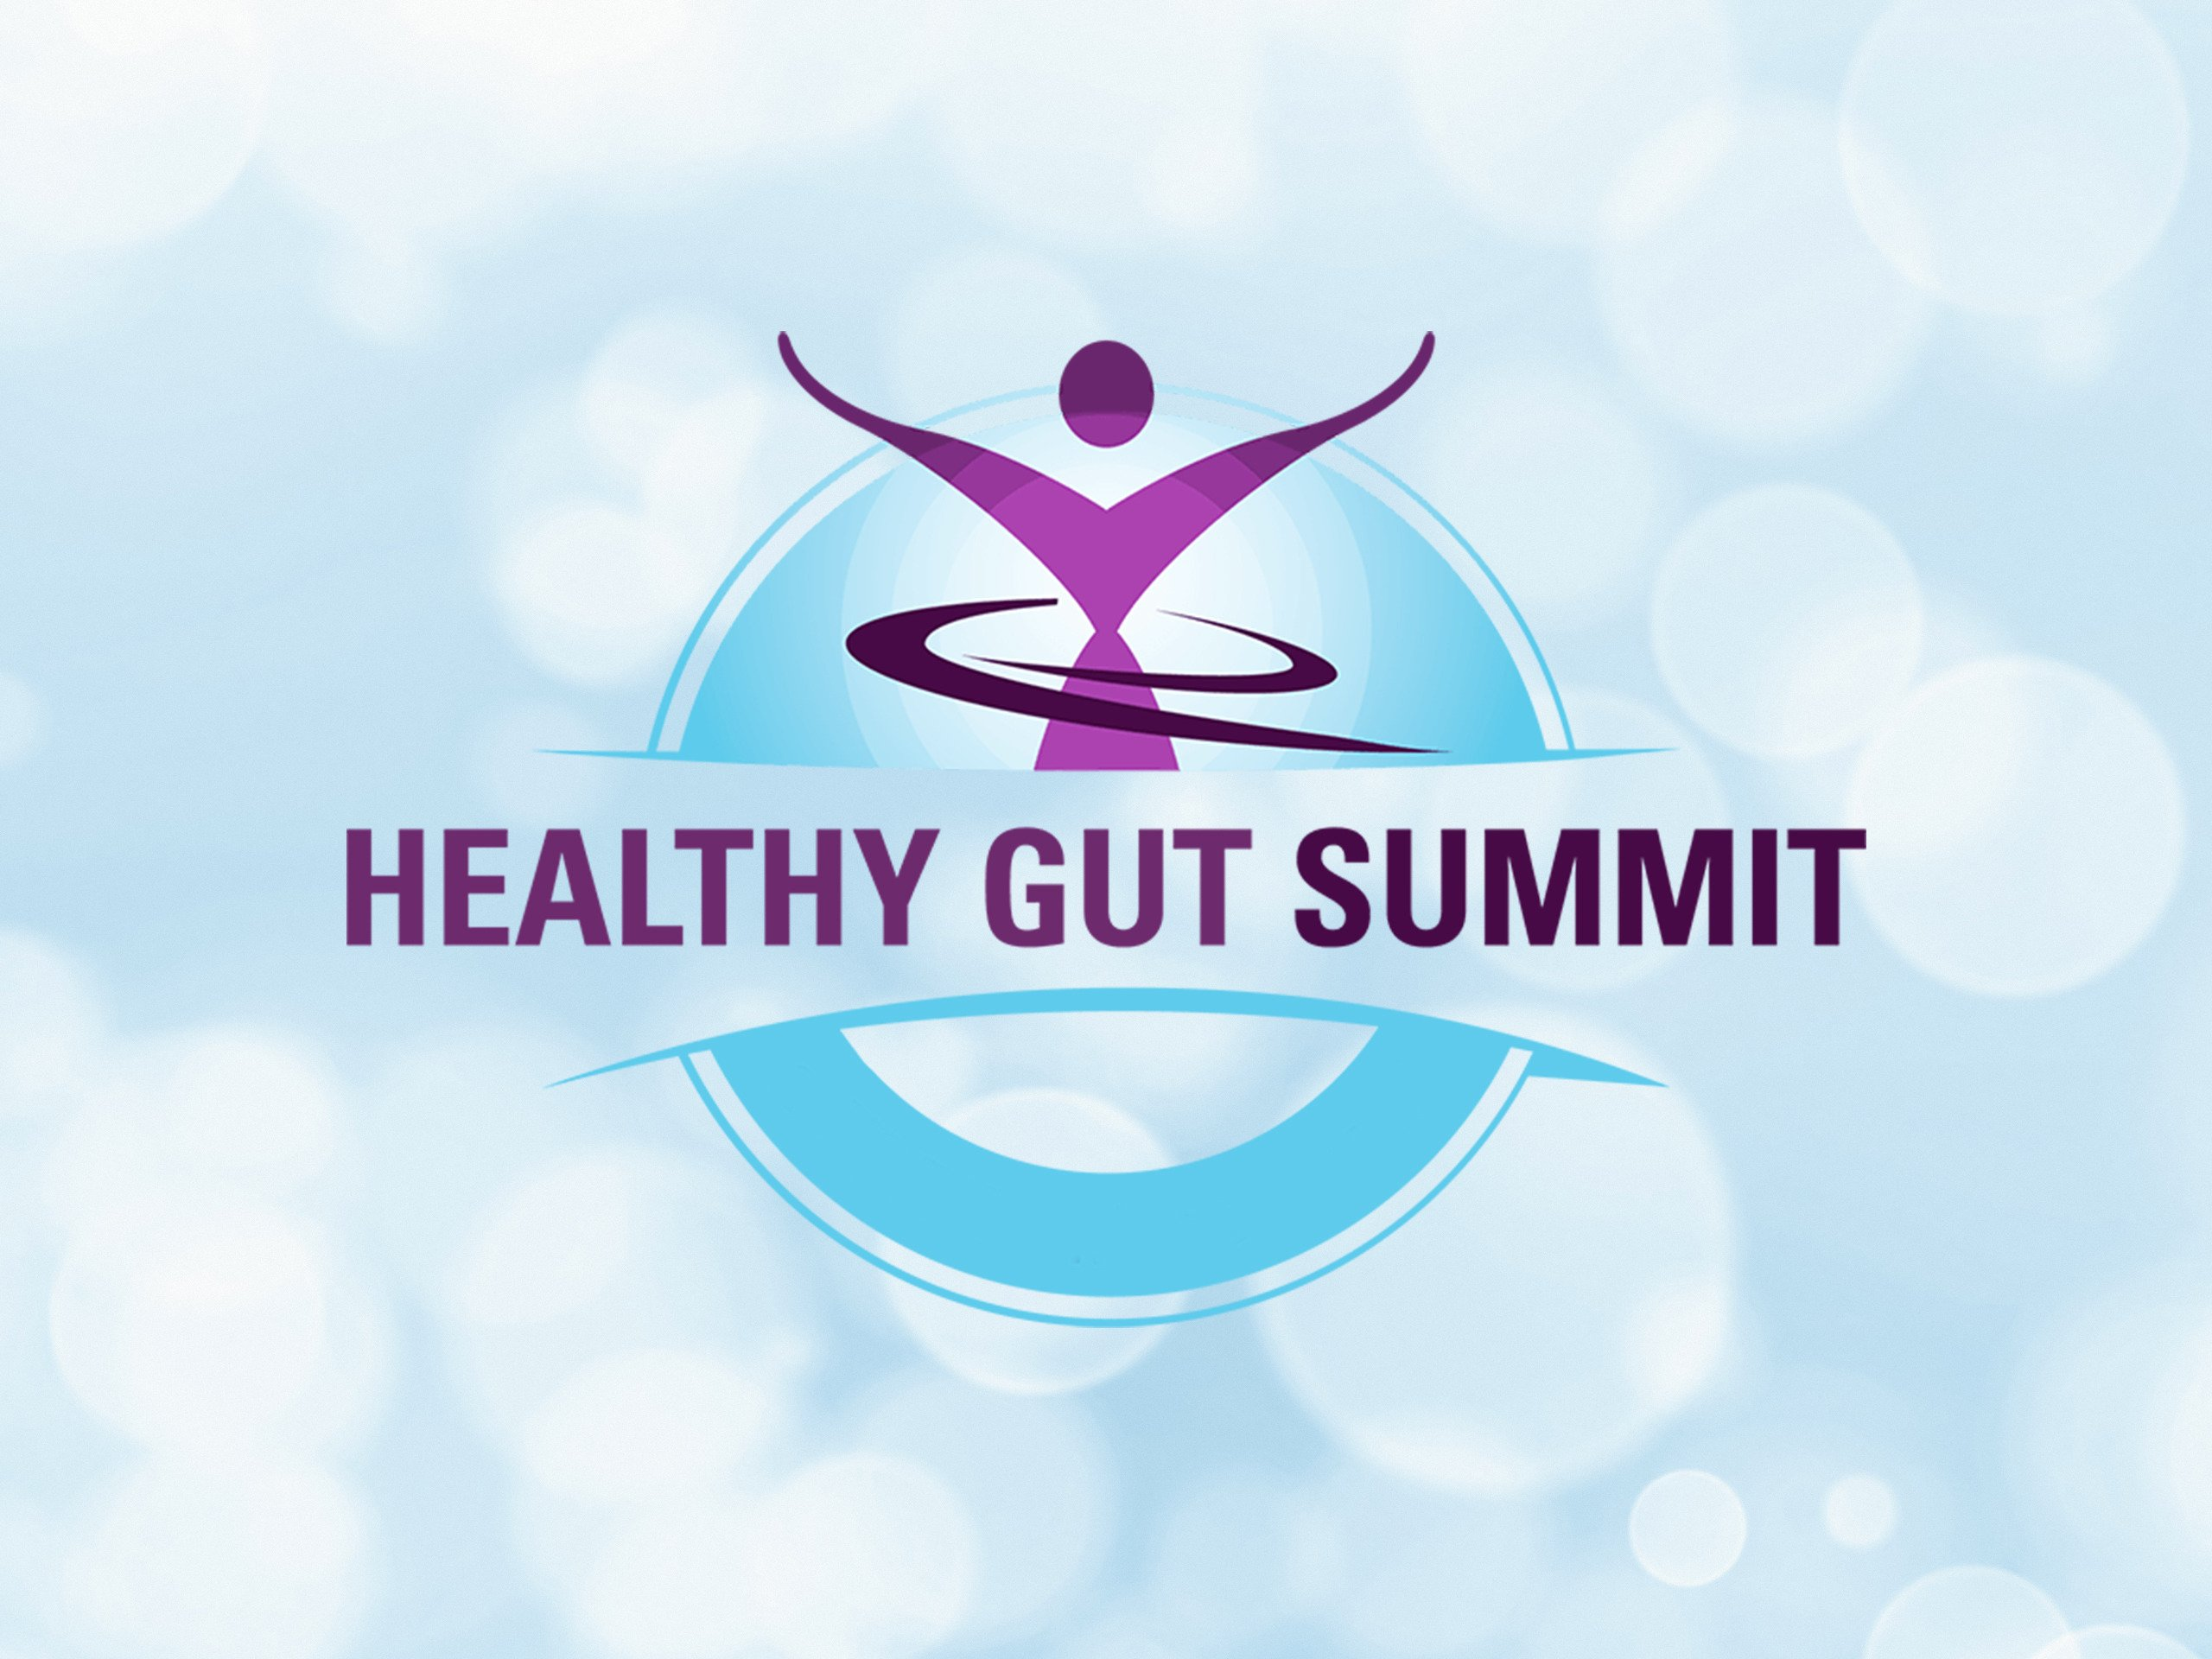 The Healthy Gut Summit